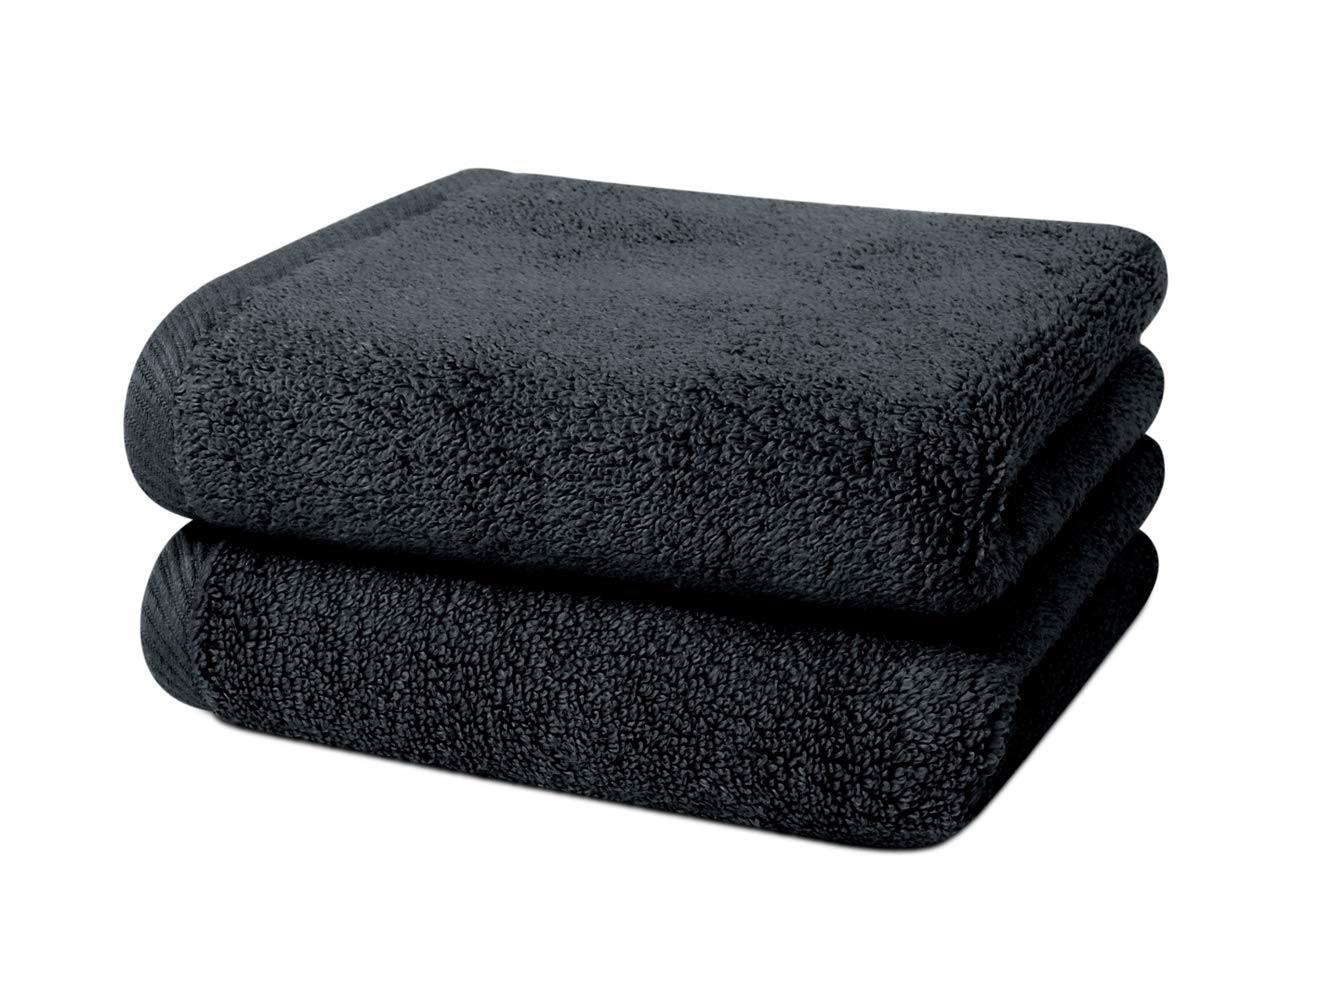 "Black Salon Hand Towels 2 Pack– 100% Ring Spun Cotton, Maximum Absorbency, Super Soft, Ultra Plush - For Hair Drying, Face, Hands, Body or Gym - 16"" x 27"" - HairDay Care"